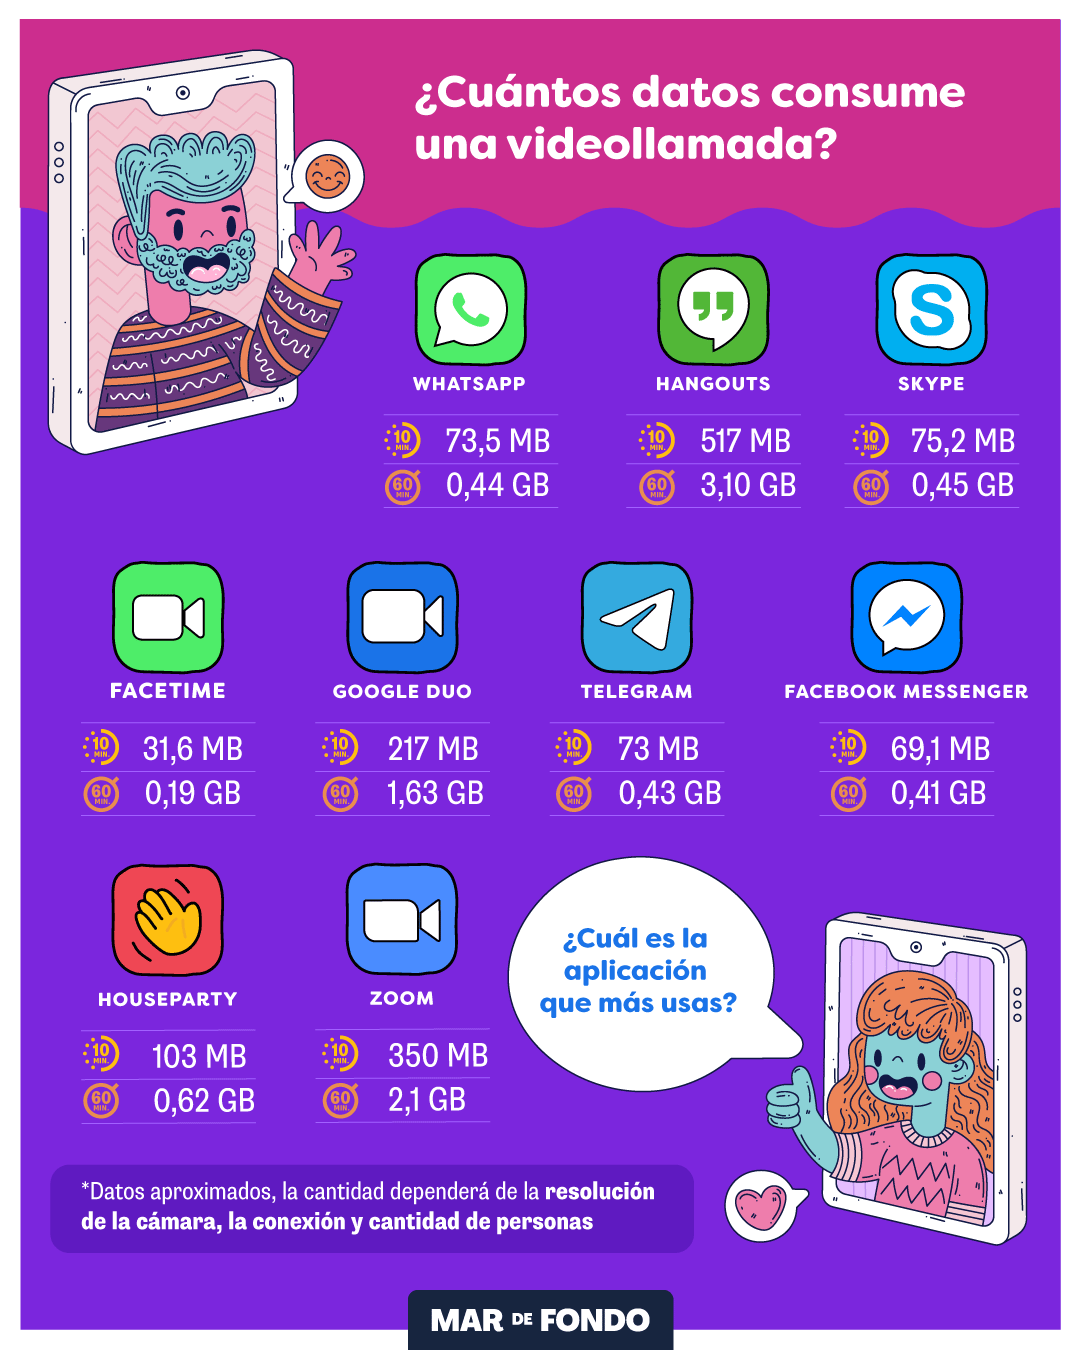 datos-video-llamadas